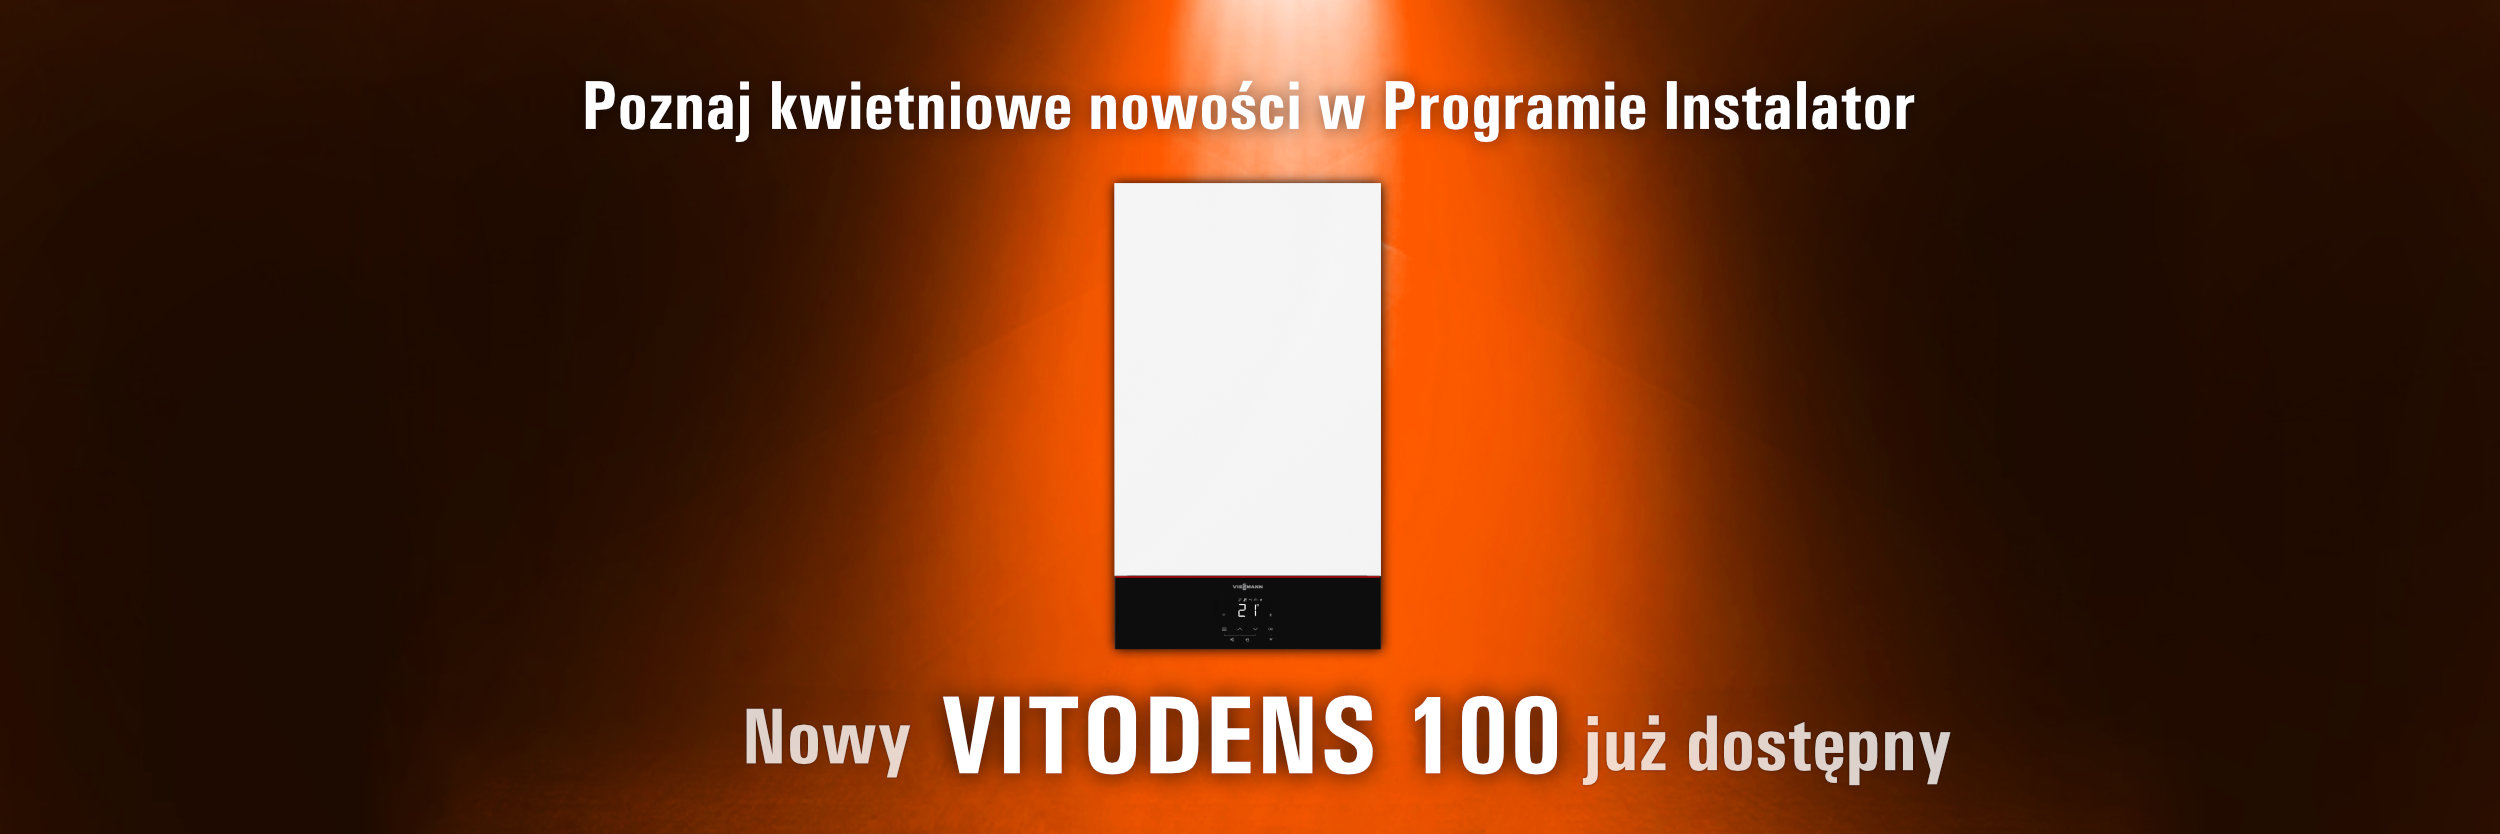 Nowy Vitodens 100